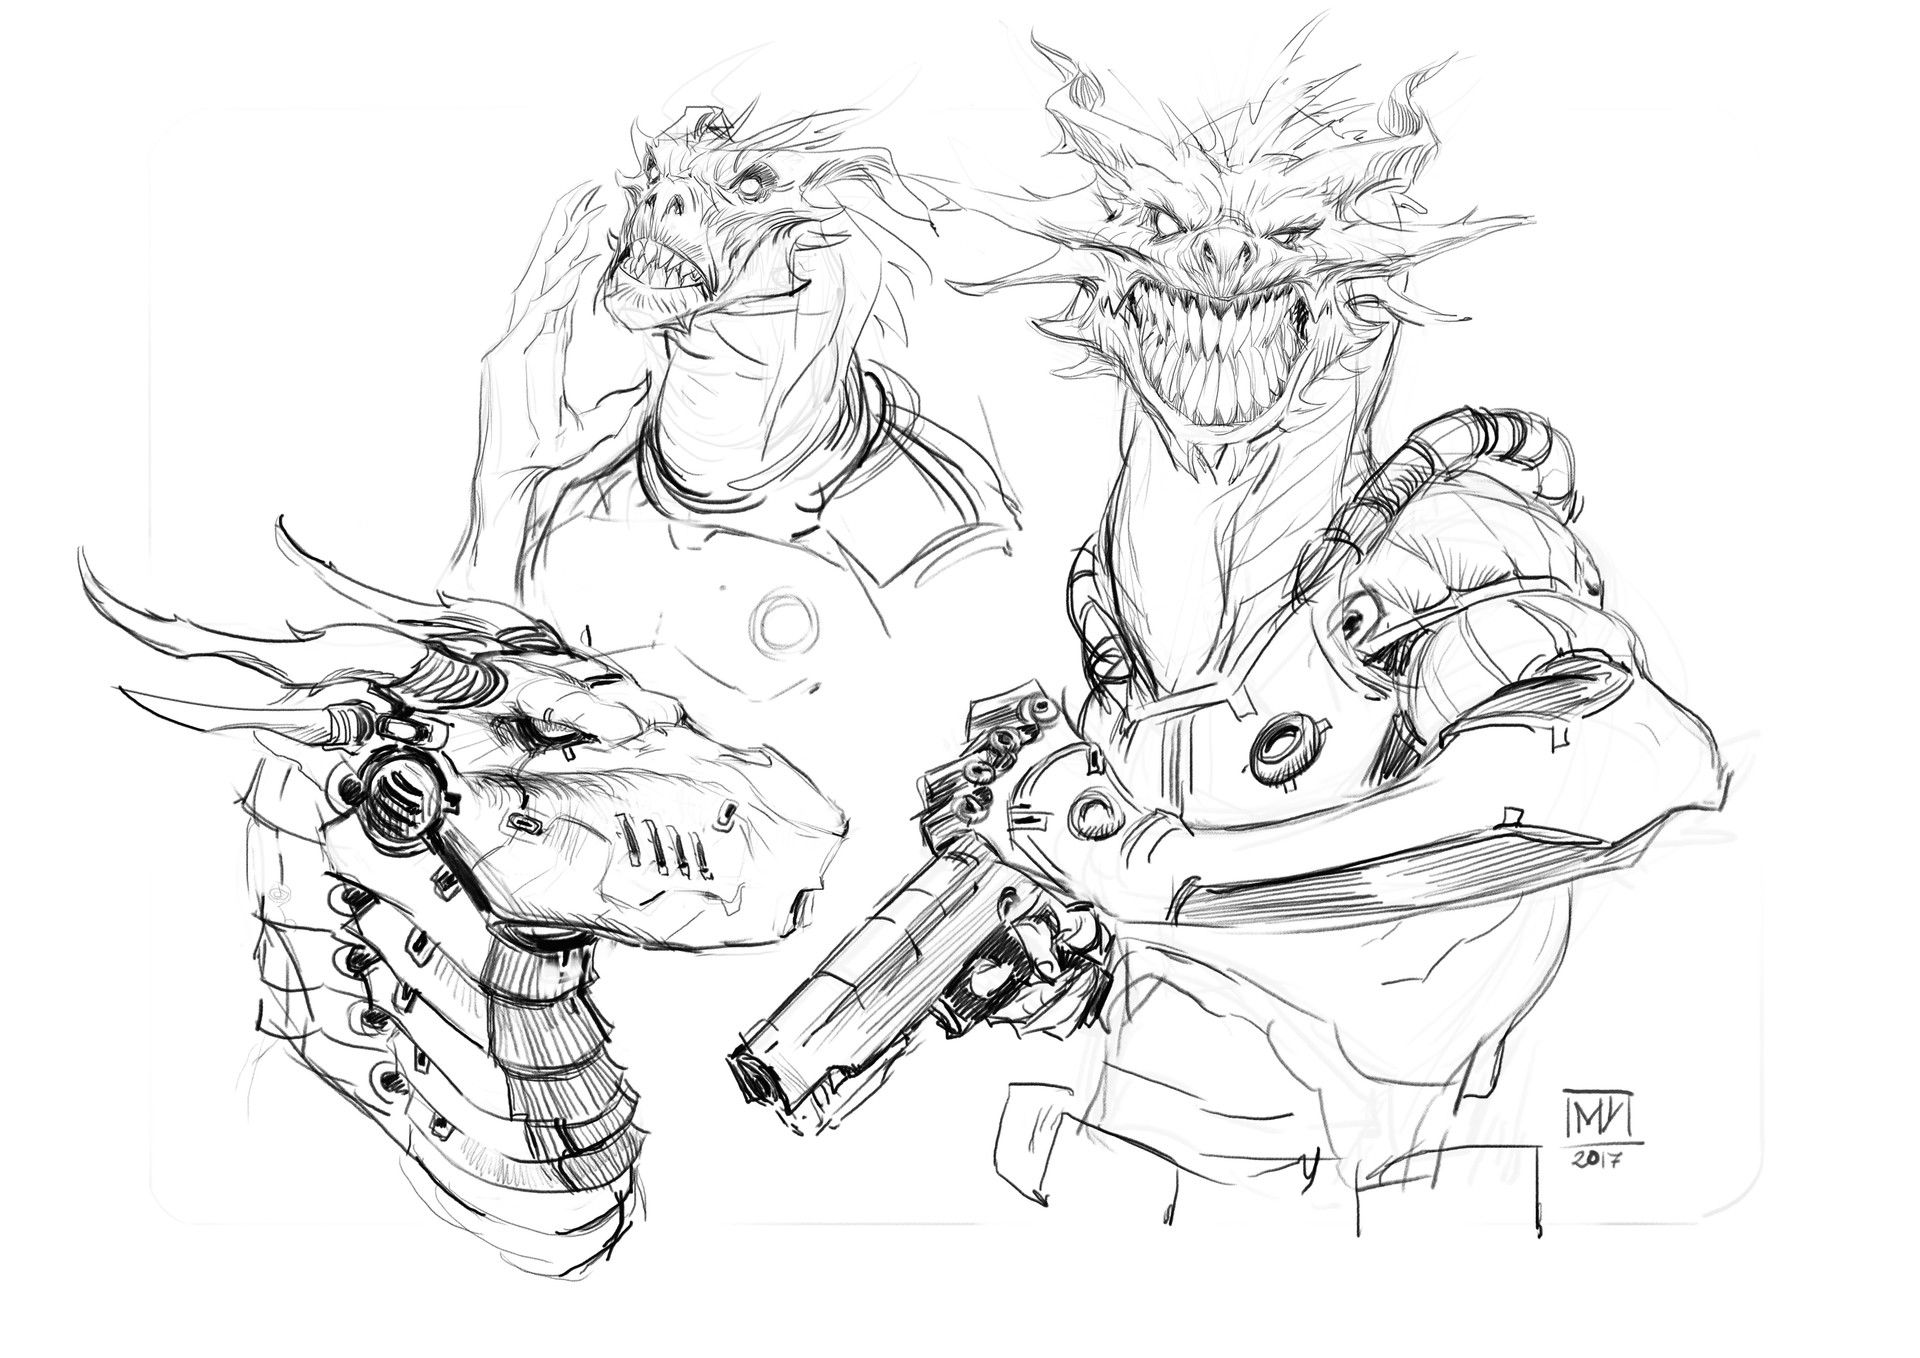 Just having some fun sketching some silly stuff :P